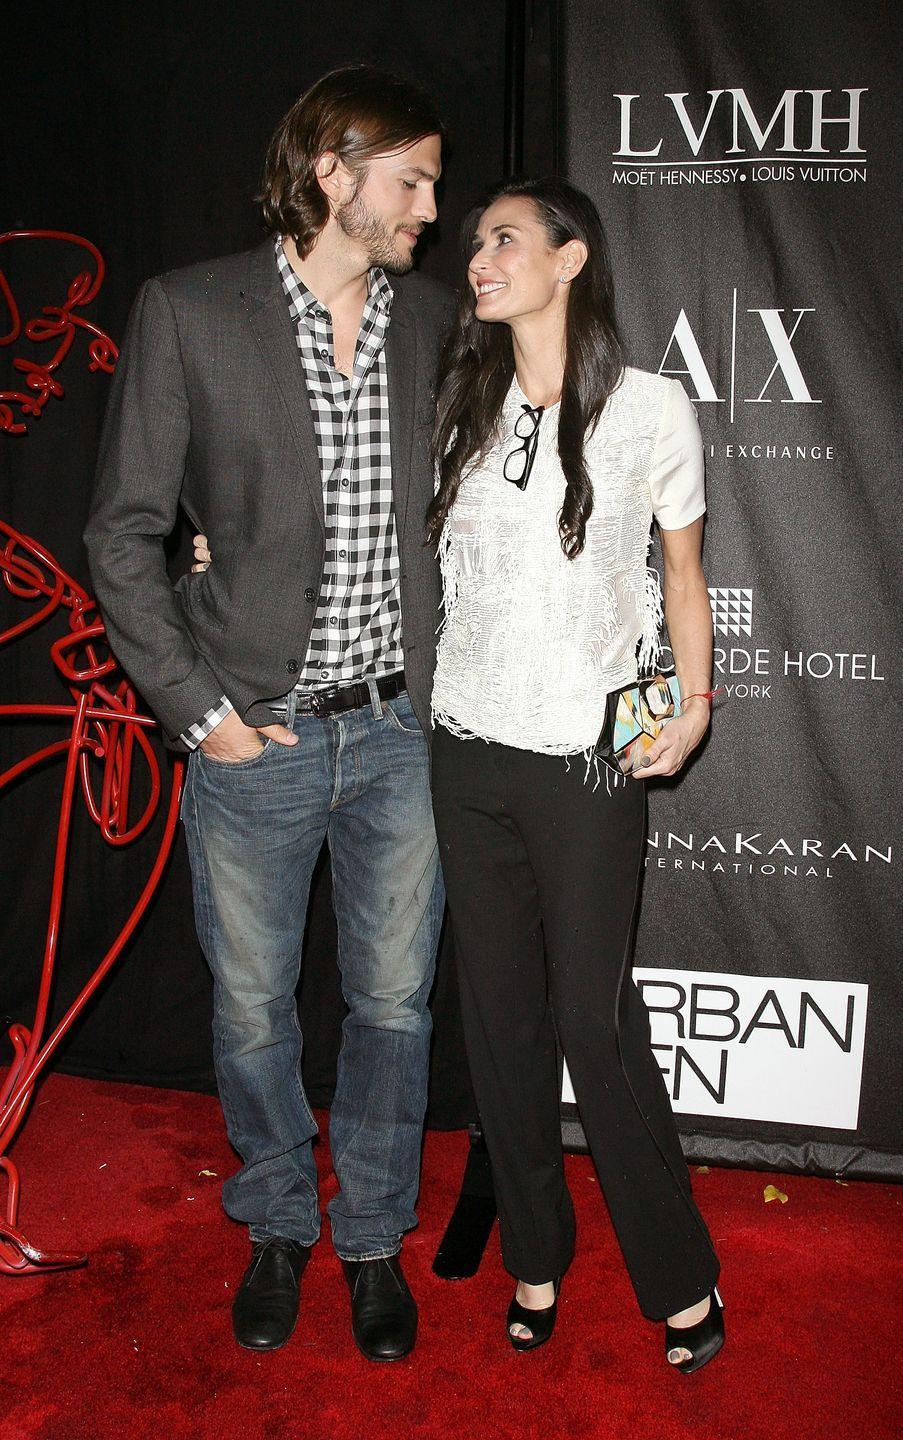 """<p>Despite their 16-year age difference, Kutcher married Moore in 2005. When they split in 2011, she released a statement to <em><a href=""""https://www.eonline.com/photos/3833/demi-moore-ashton-kutcher-romance-recap/144816"""" rel=""""nofollow noopener"""" target=""""_blank"""" data-ylk=""""slk:E! News"""" class=""""link rapid-noclick-resp"""">E! News</a> </em>that said: """"It is with great sadness and a heavy heart that I have decided to end my six-year marriage to Ashton."""" </p>"""